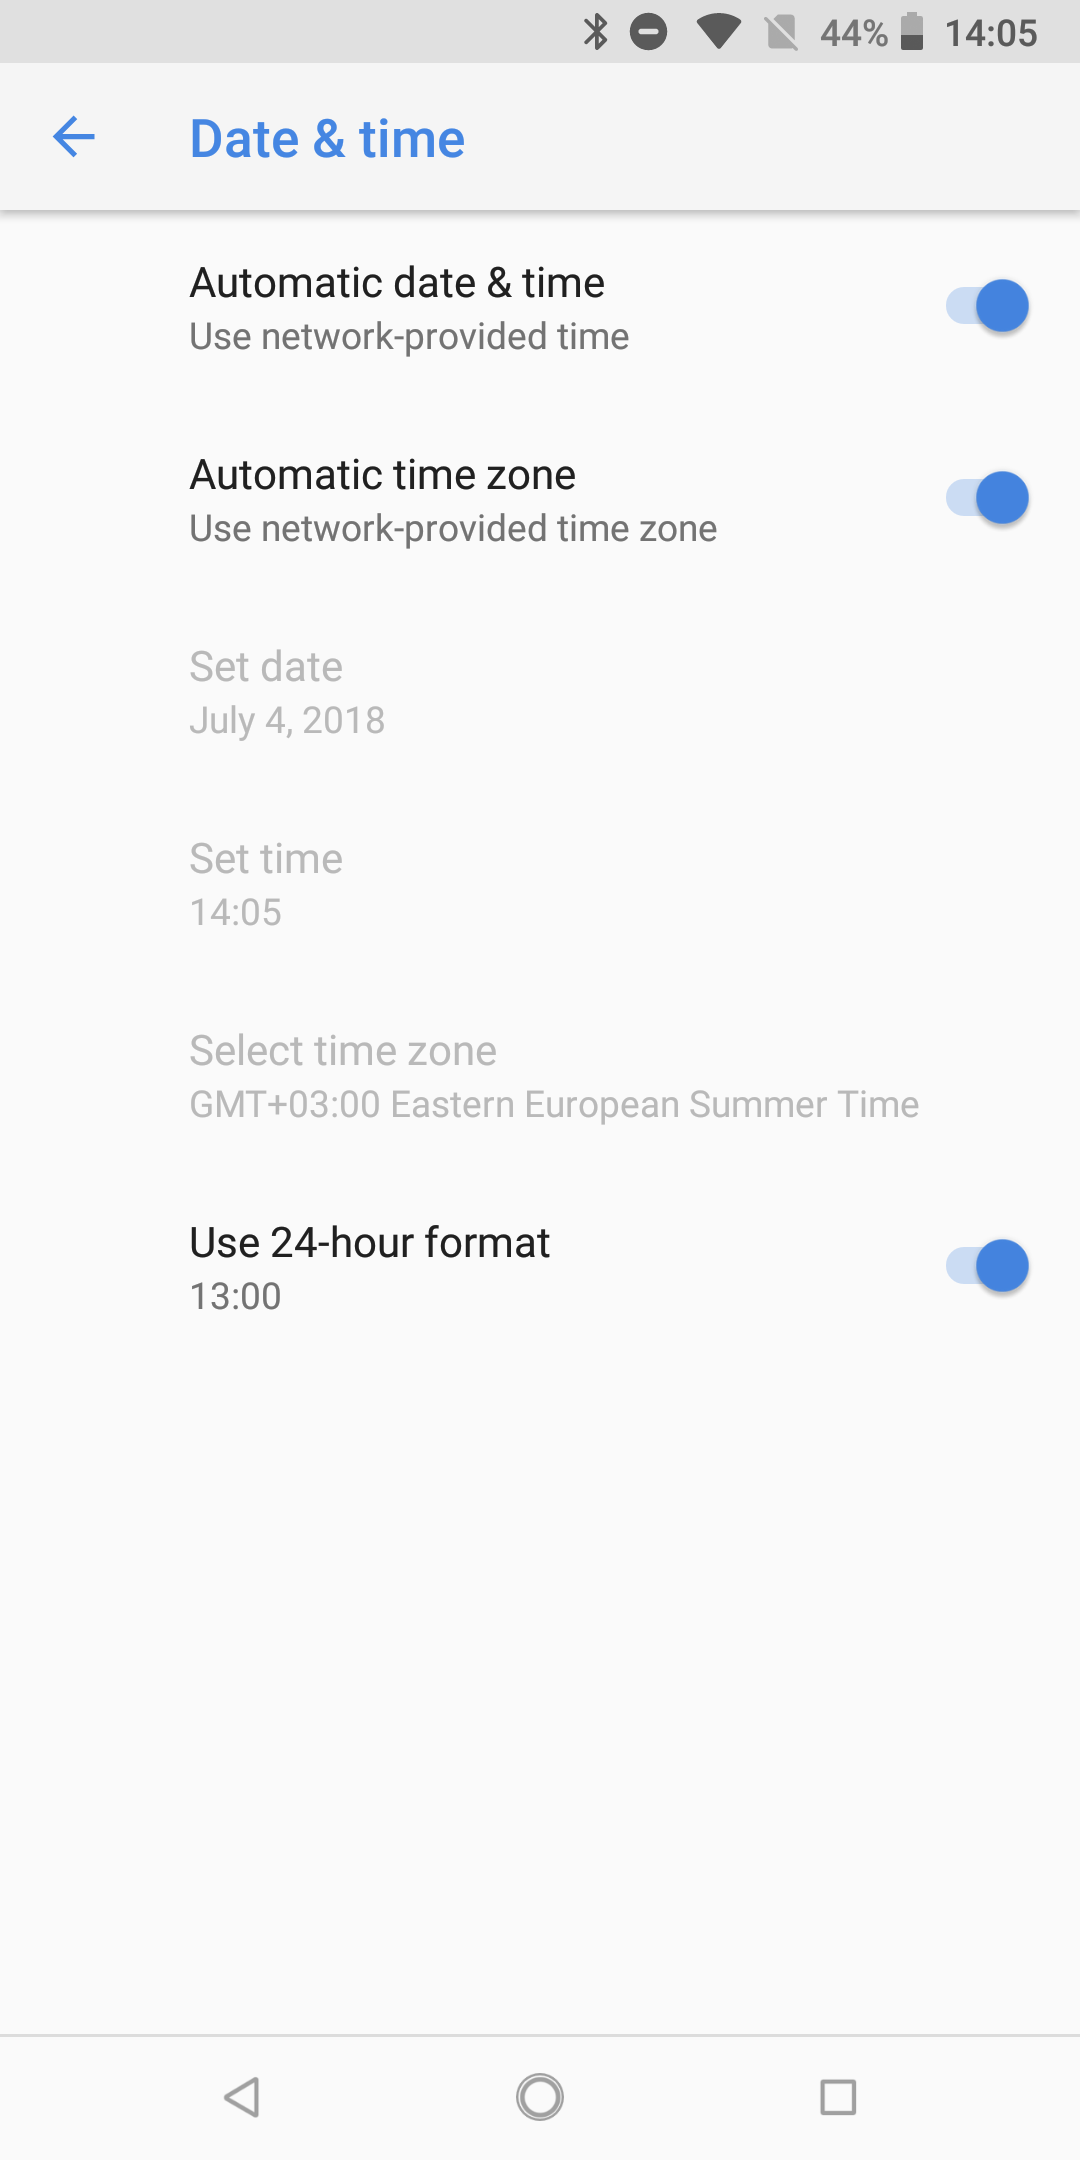 Android P adds automatic setting for 24-hour time format